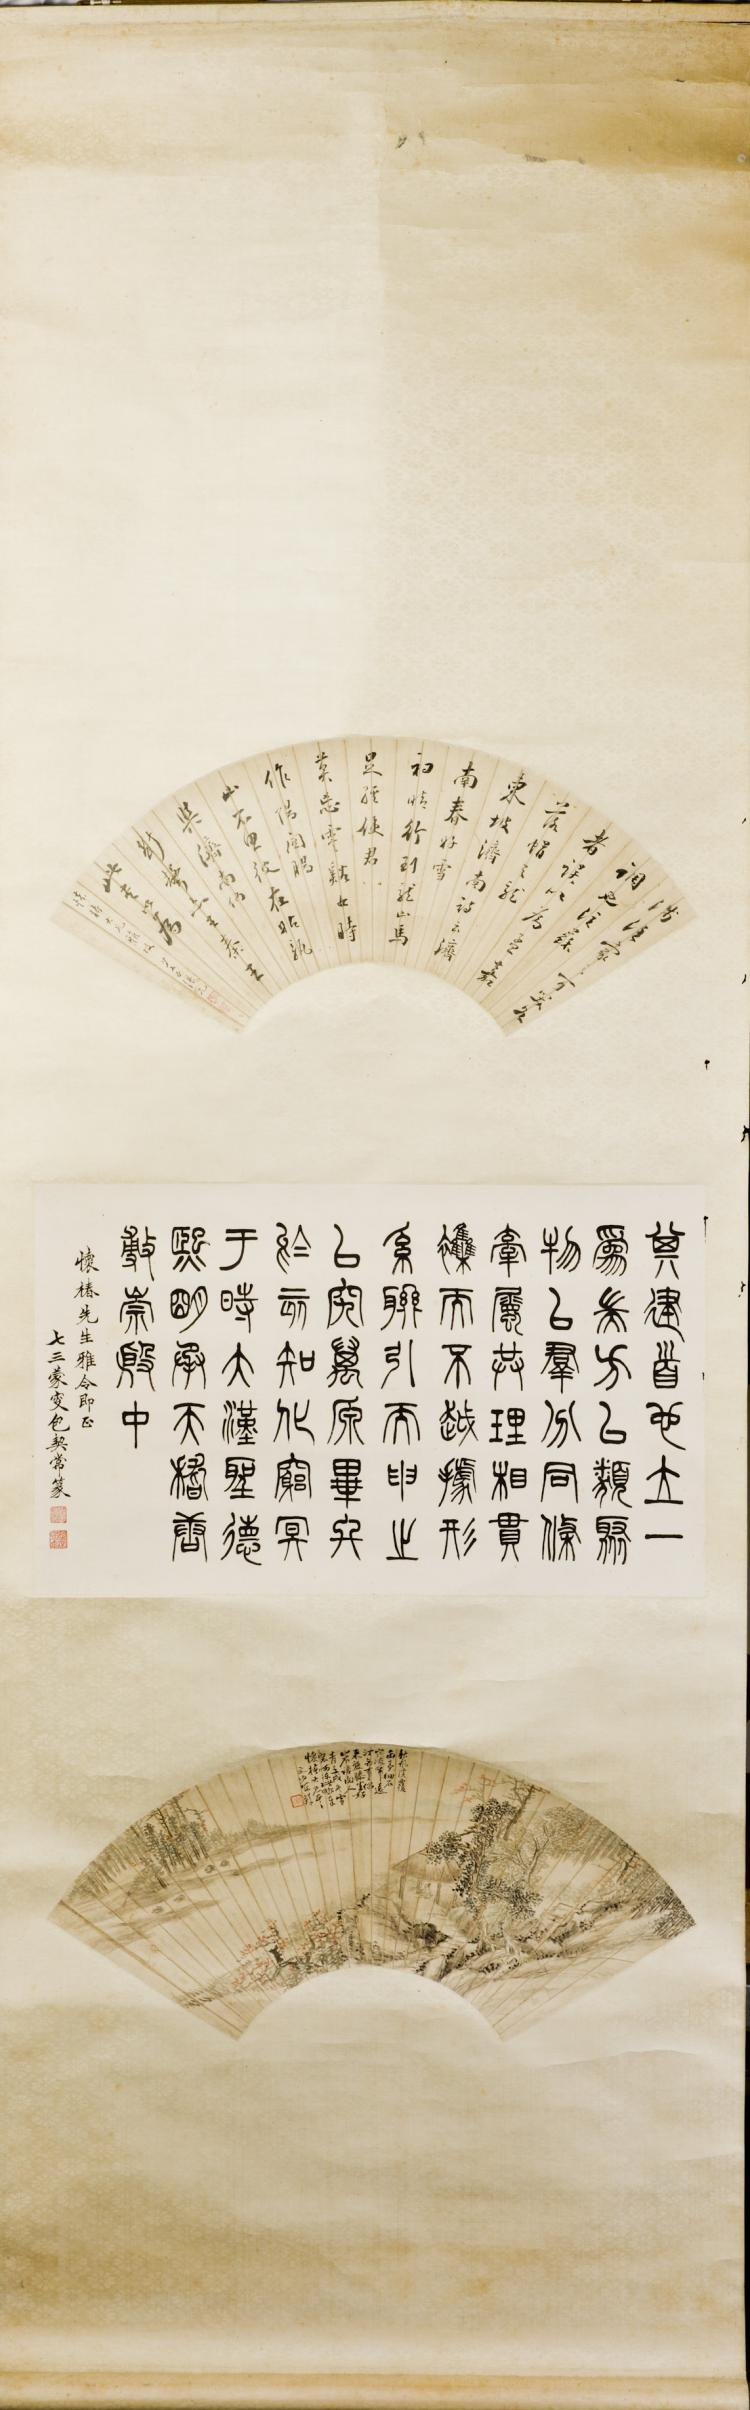 Chinese Calligraphy And Painting On Scroll Paper